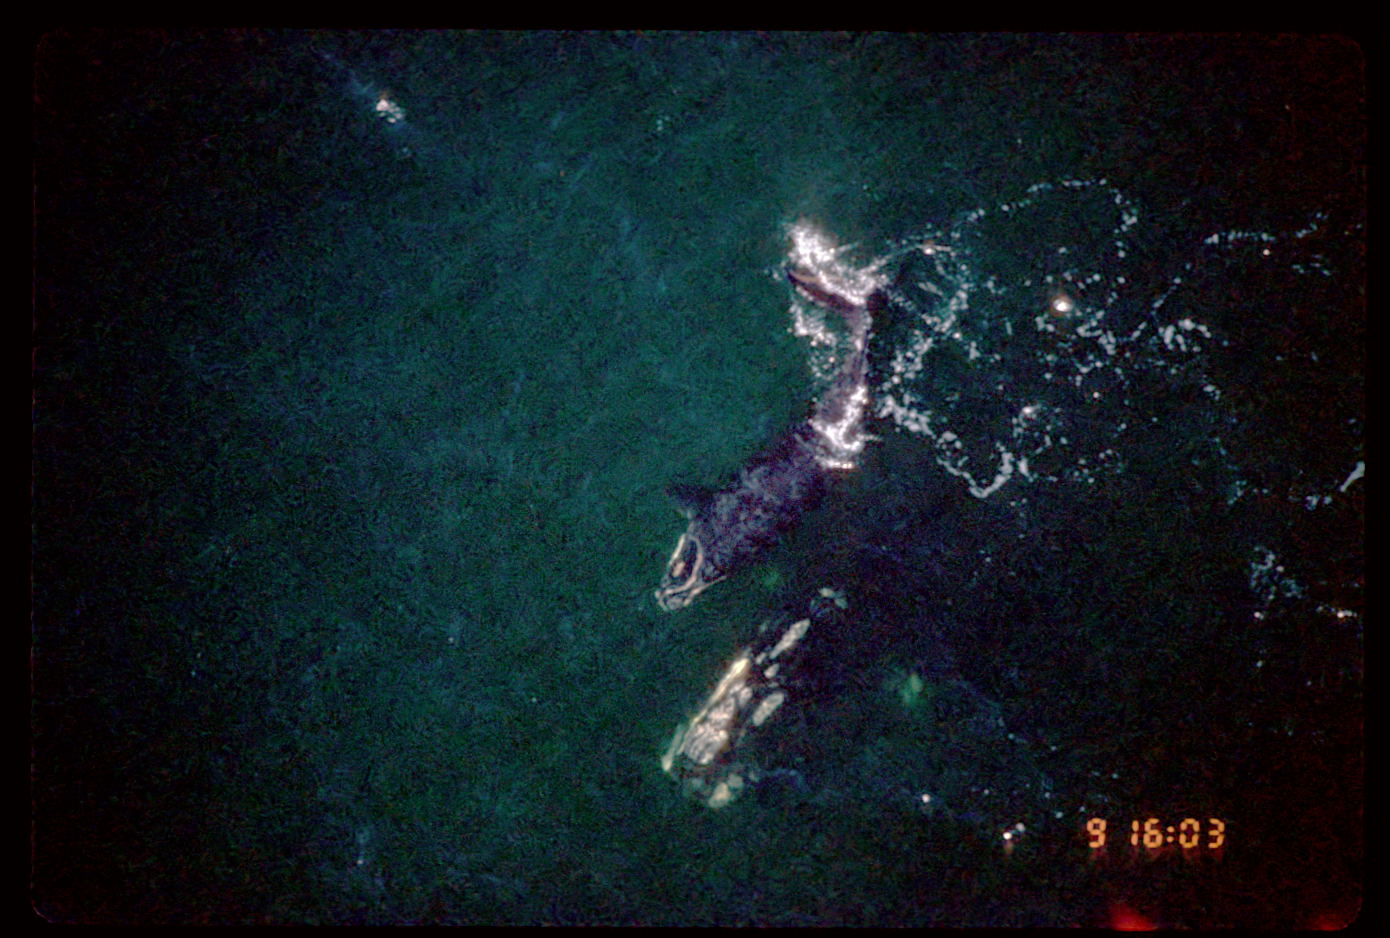 In 1996, at age nine, Phoenix has her first calf (North Atlantic right whale #2605) off the southeast coast of Florida.<div class='credit'><strong>Credit:</strong> In 1996, at age nine, Phoenix has her first calf (North Atlantic right whale #2605) off the southeast coast of Florida.</div>